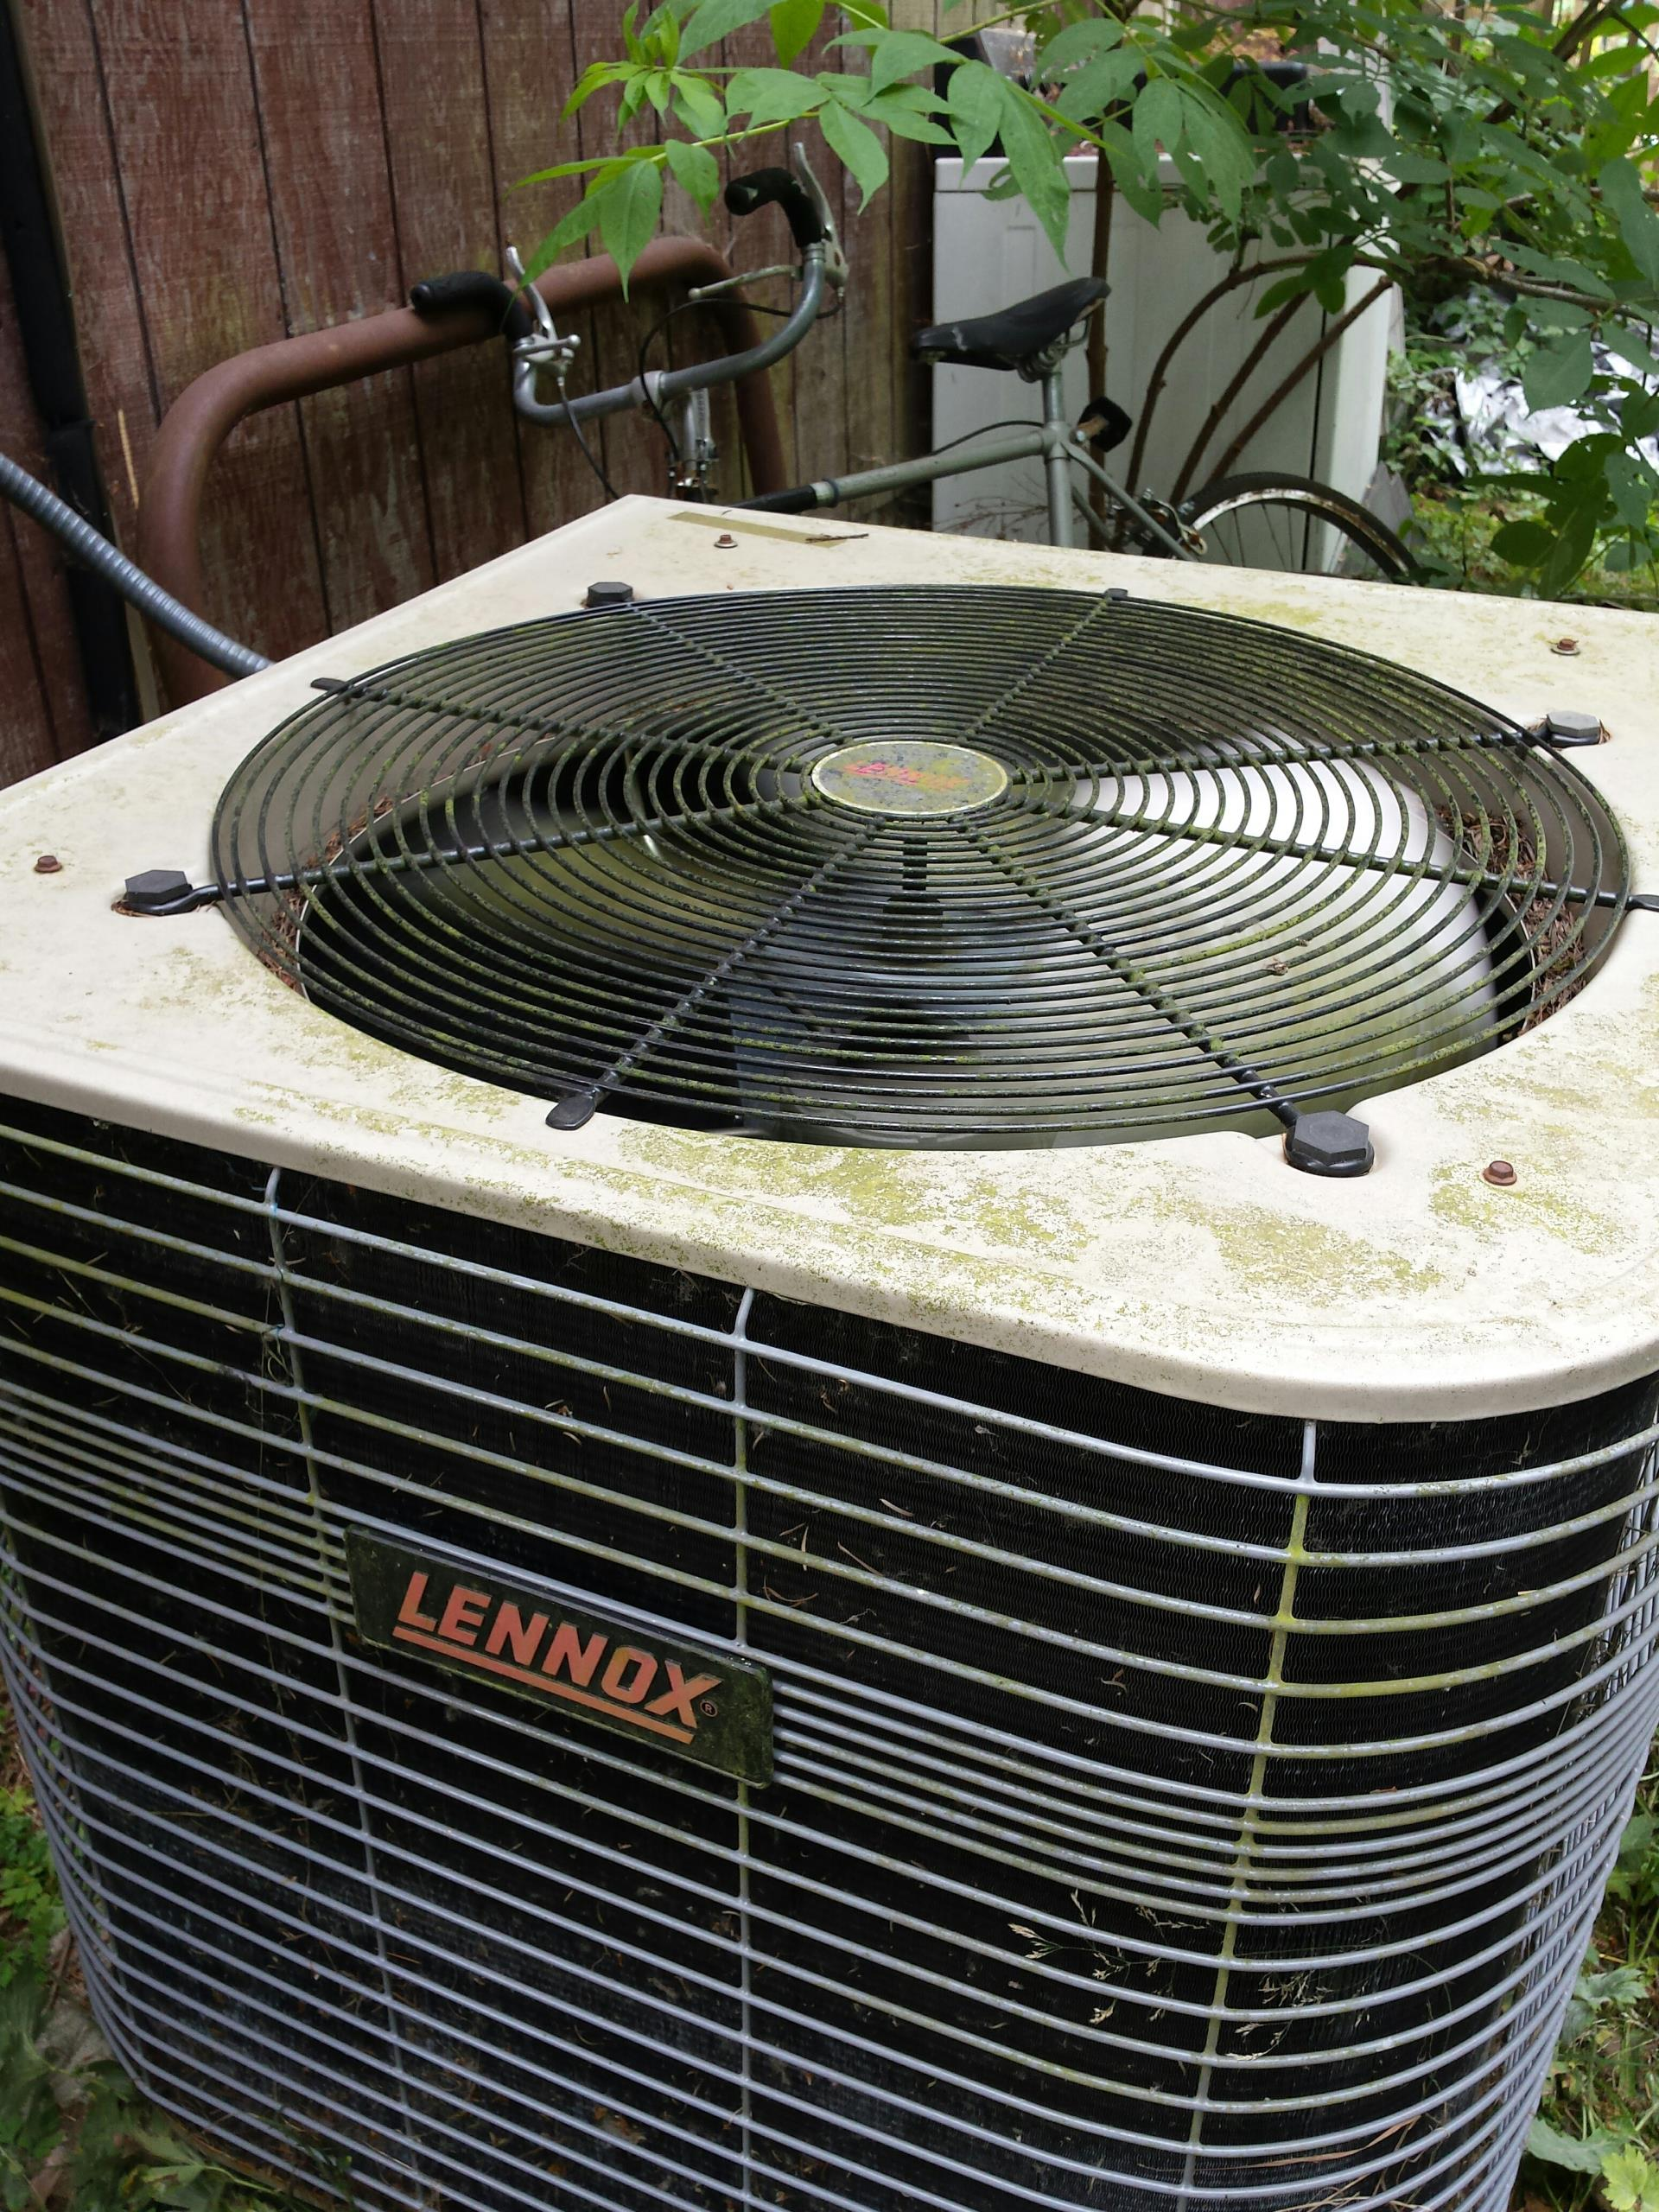 Monroe, WA - Repairing a residential heat pump in air conditioning.